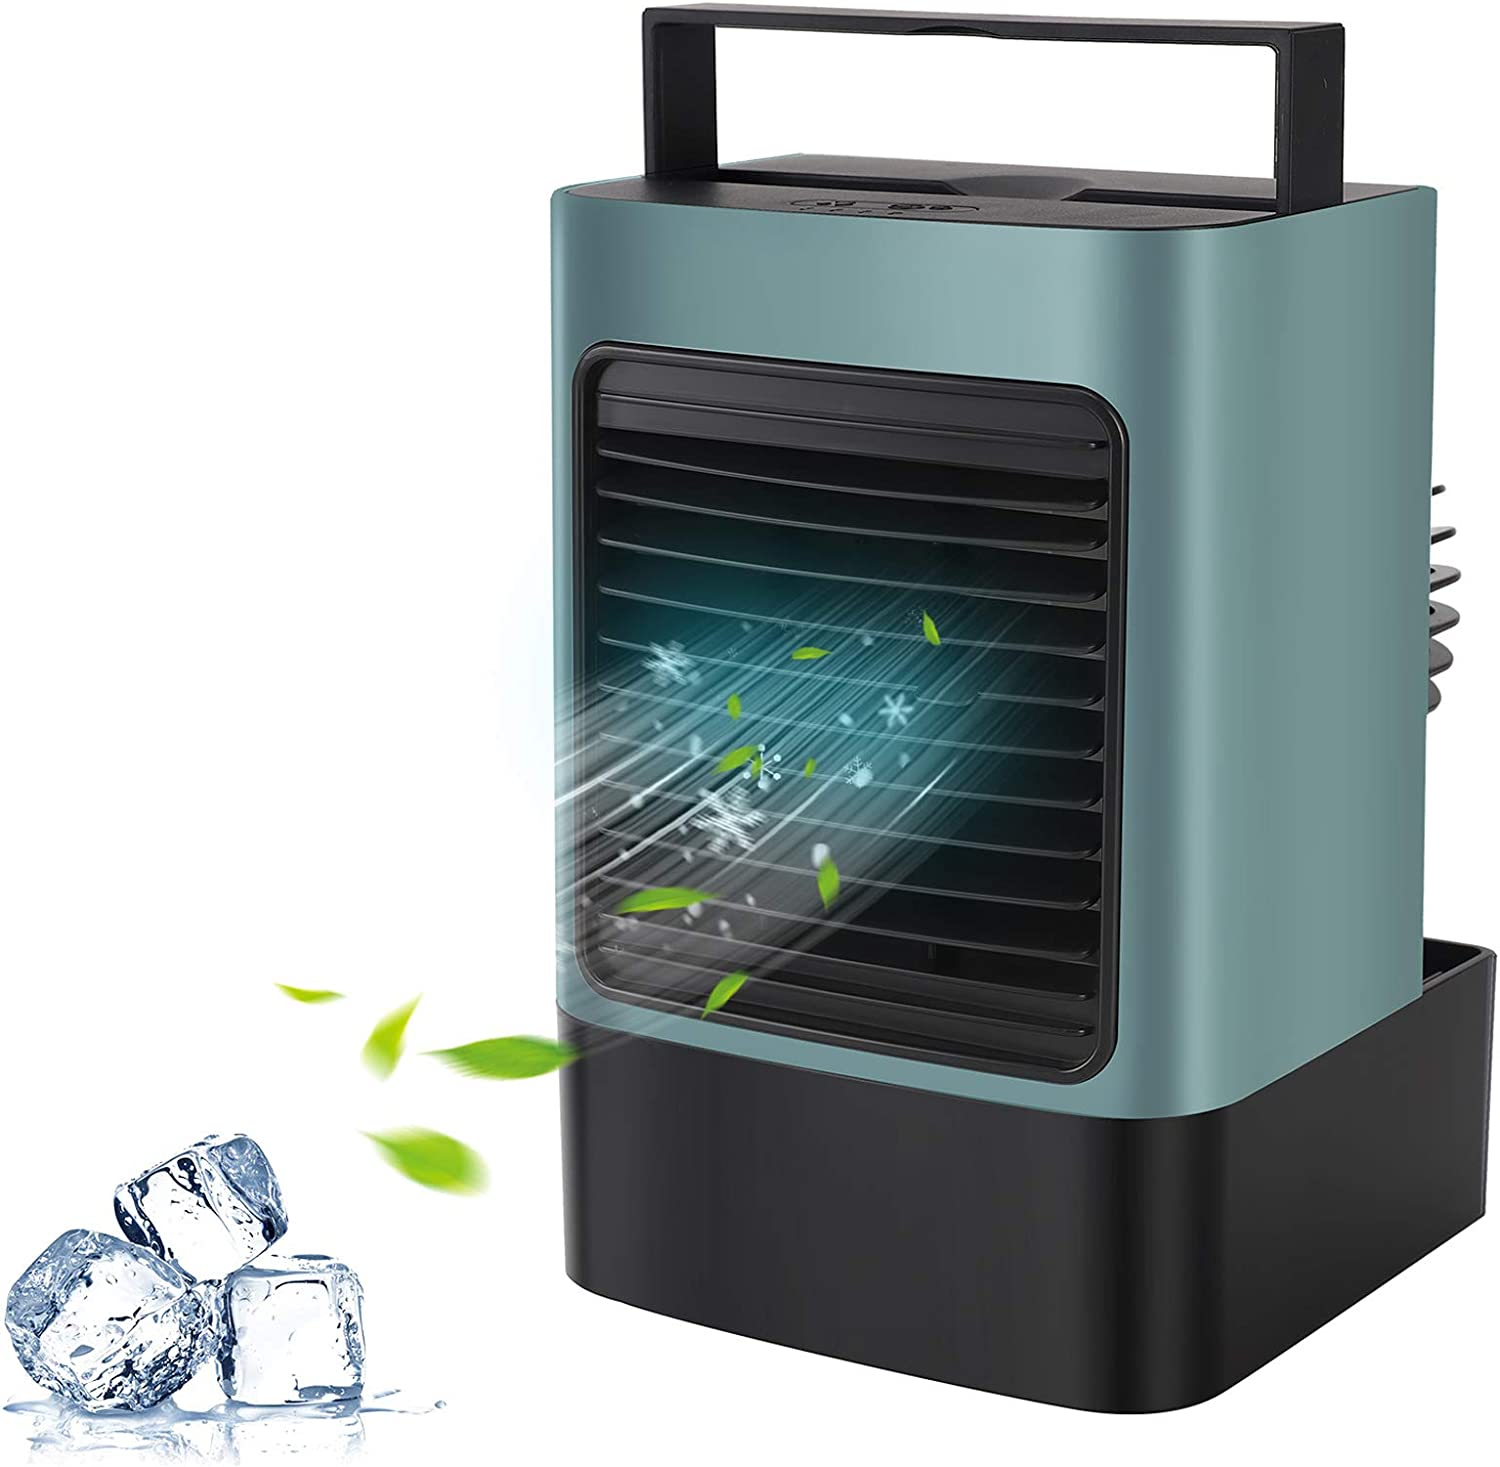 MOVTIP Portable Air Conditioner Fan, Personal Space Air Cooler Mini Evaporative Cooler Quiet Desk Fan, Air Circulator Humidifier Misting Fan for Home Office Bedroom (Green)